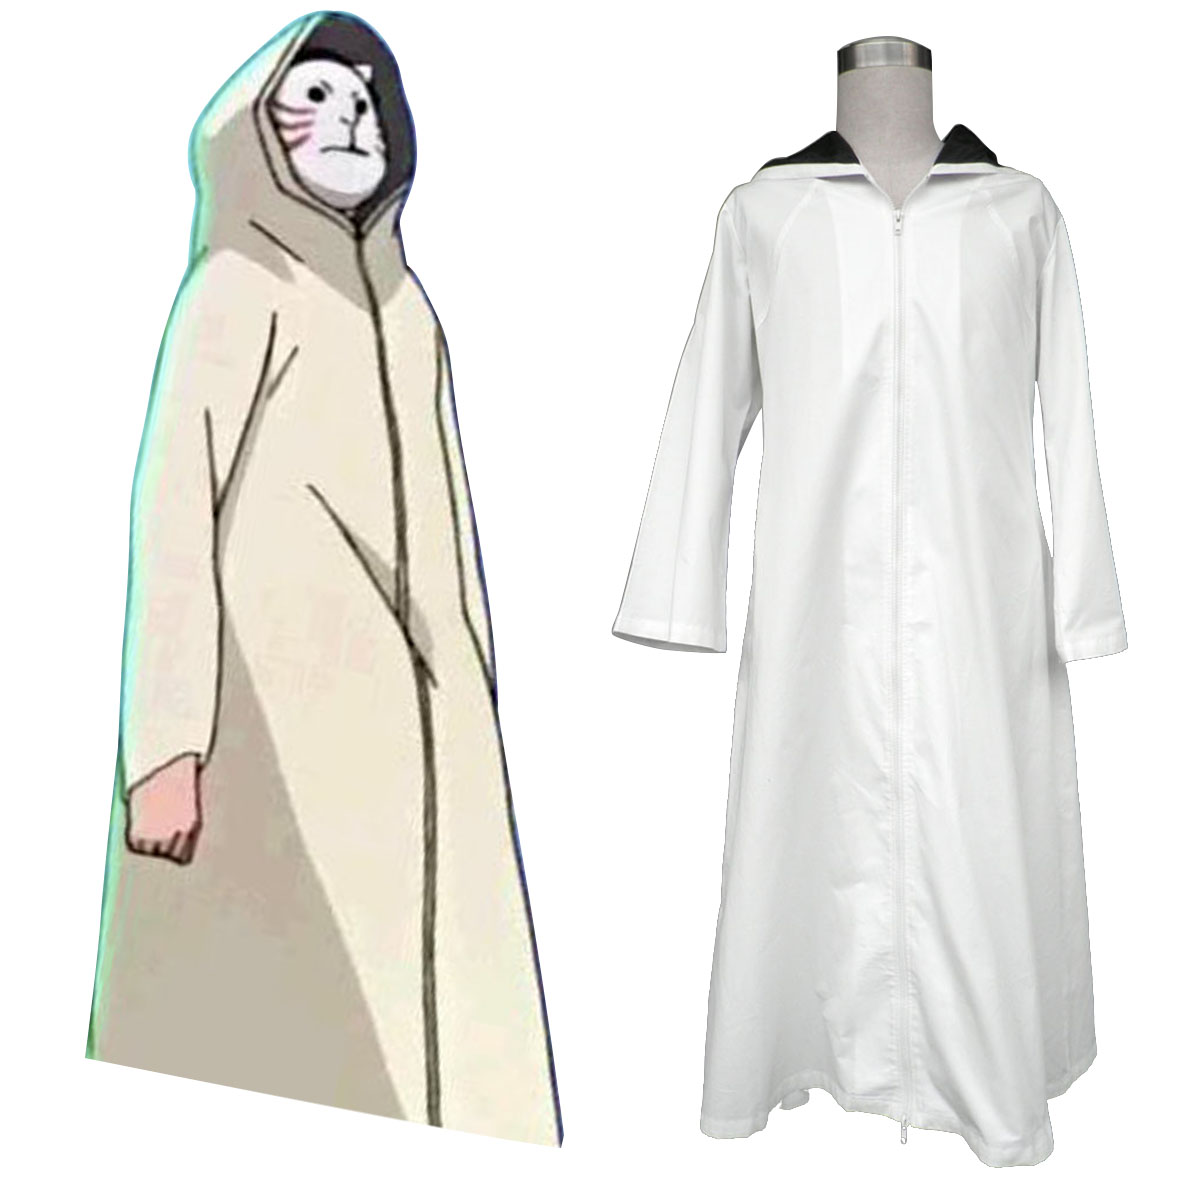 Naruto ANBU Cloak 1 Cosplay Costumes New Zealand Online Store